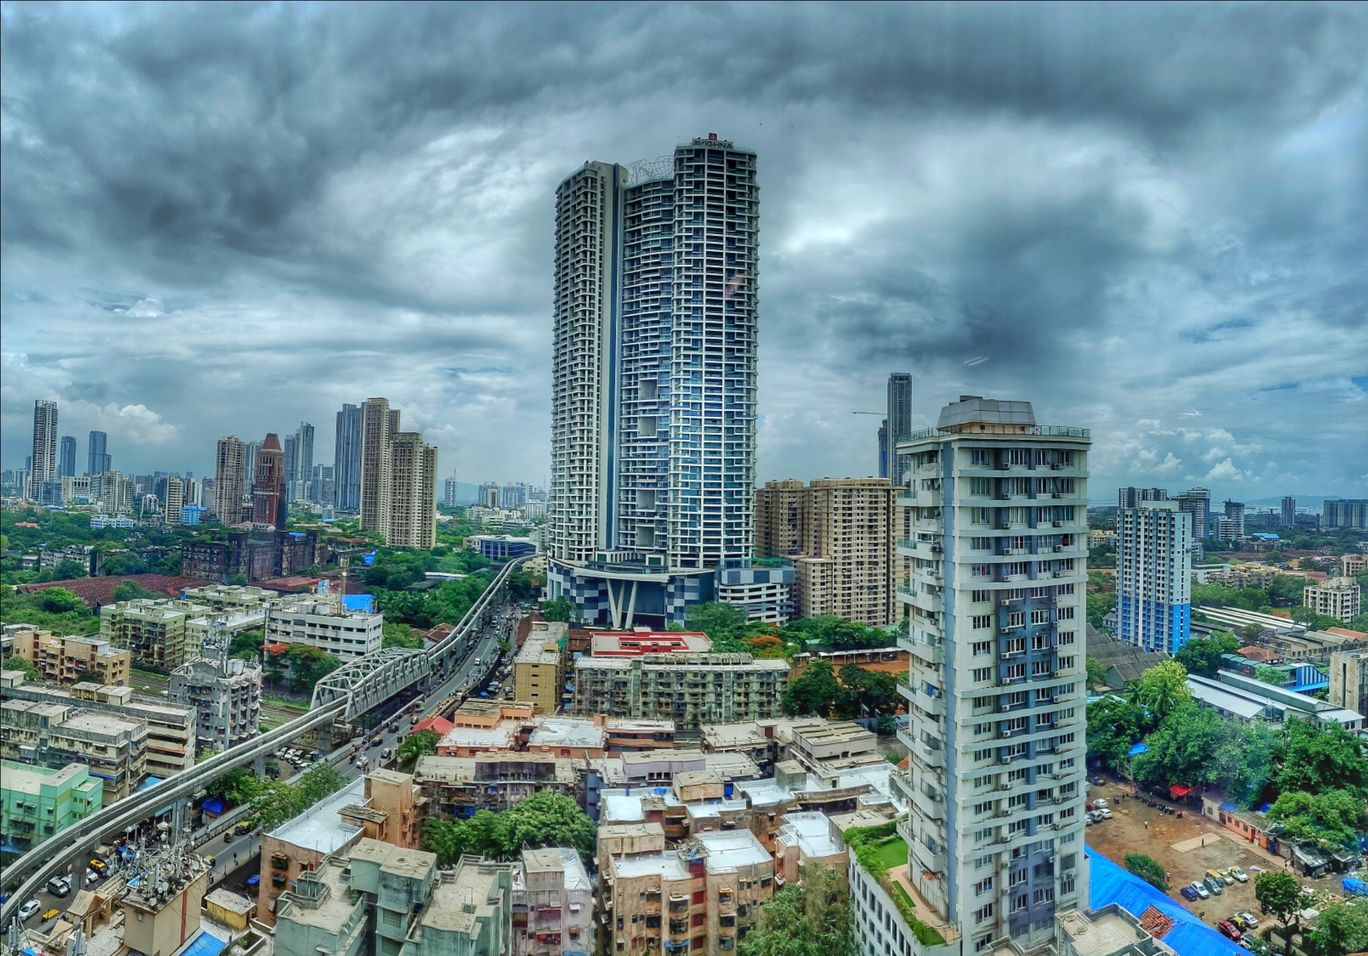 Photo of Lower Parel By Arun Nair